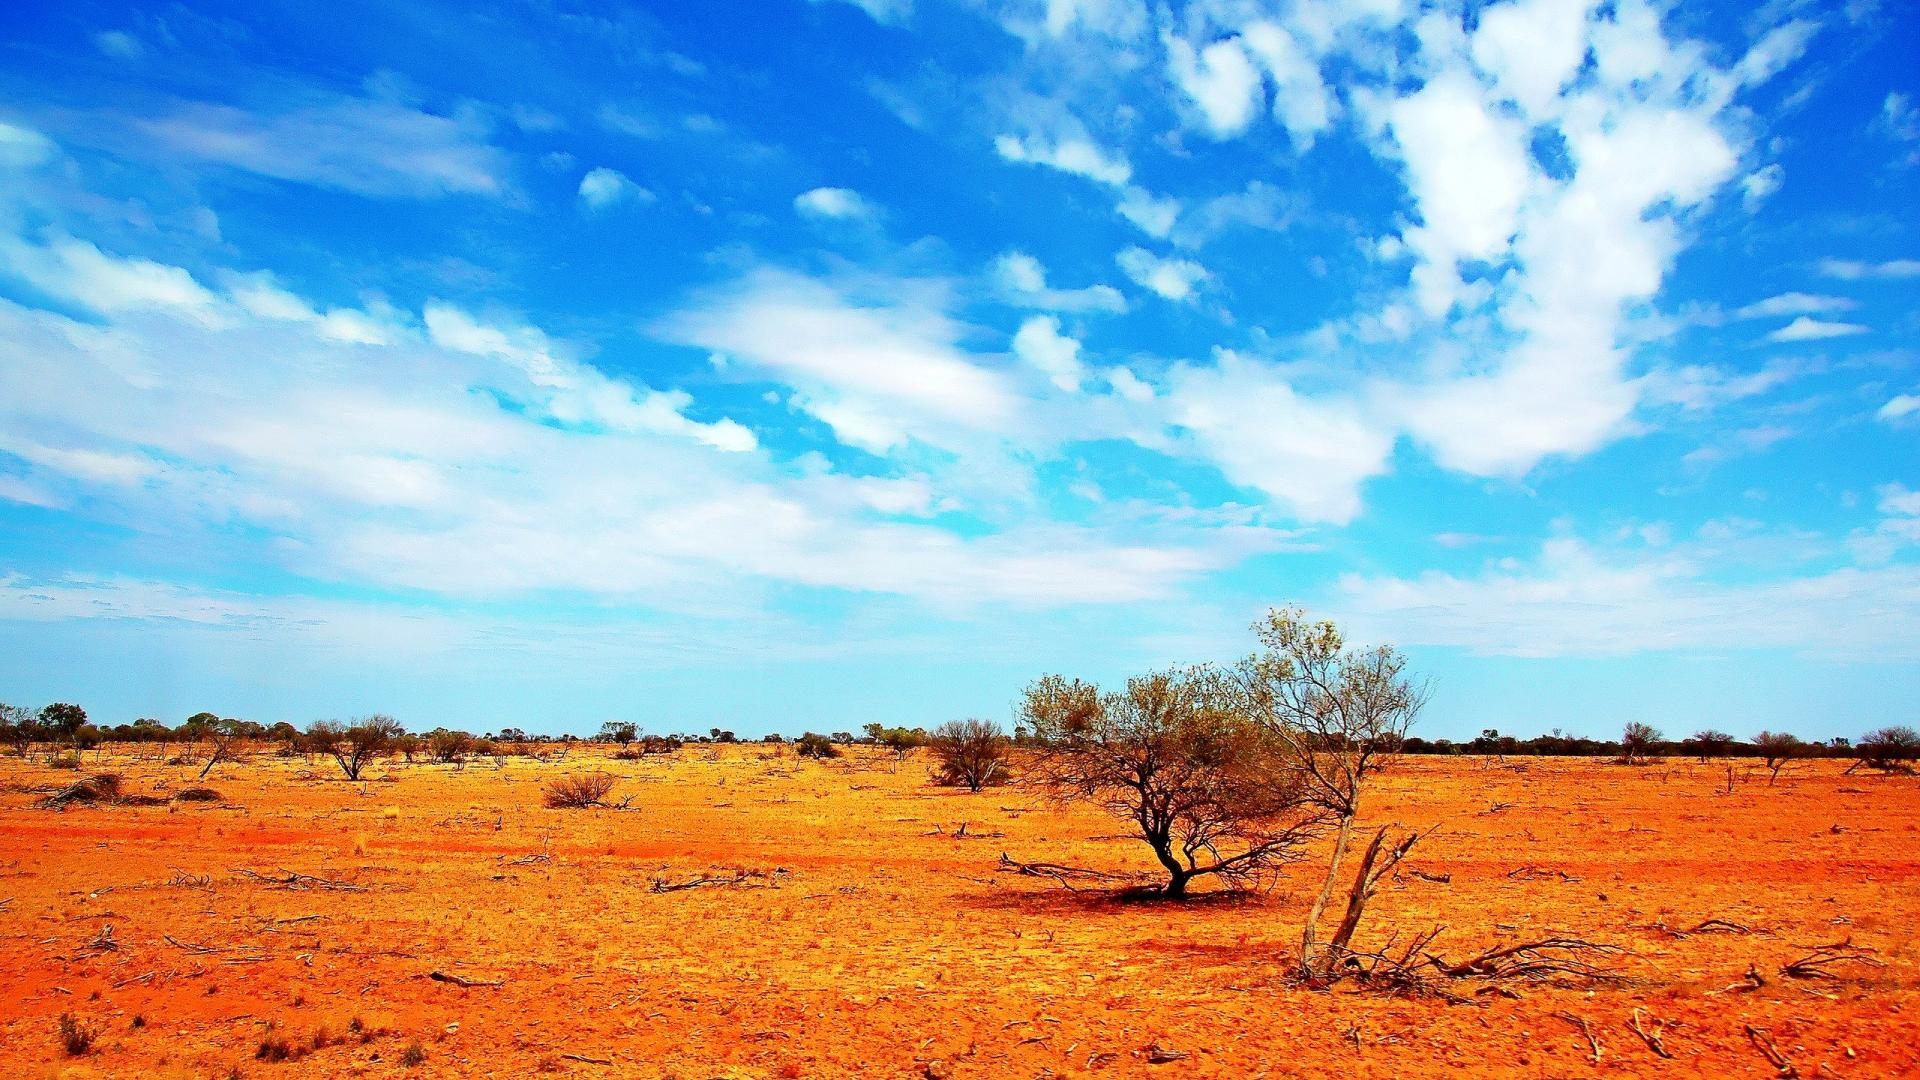 Australia wallpapers best wallpapers for Wallpaper pictures